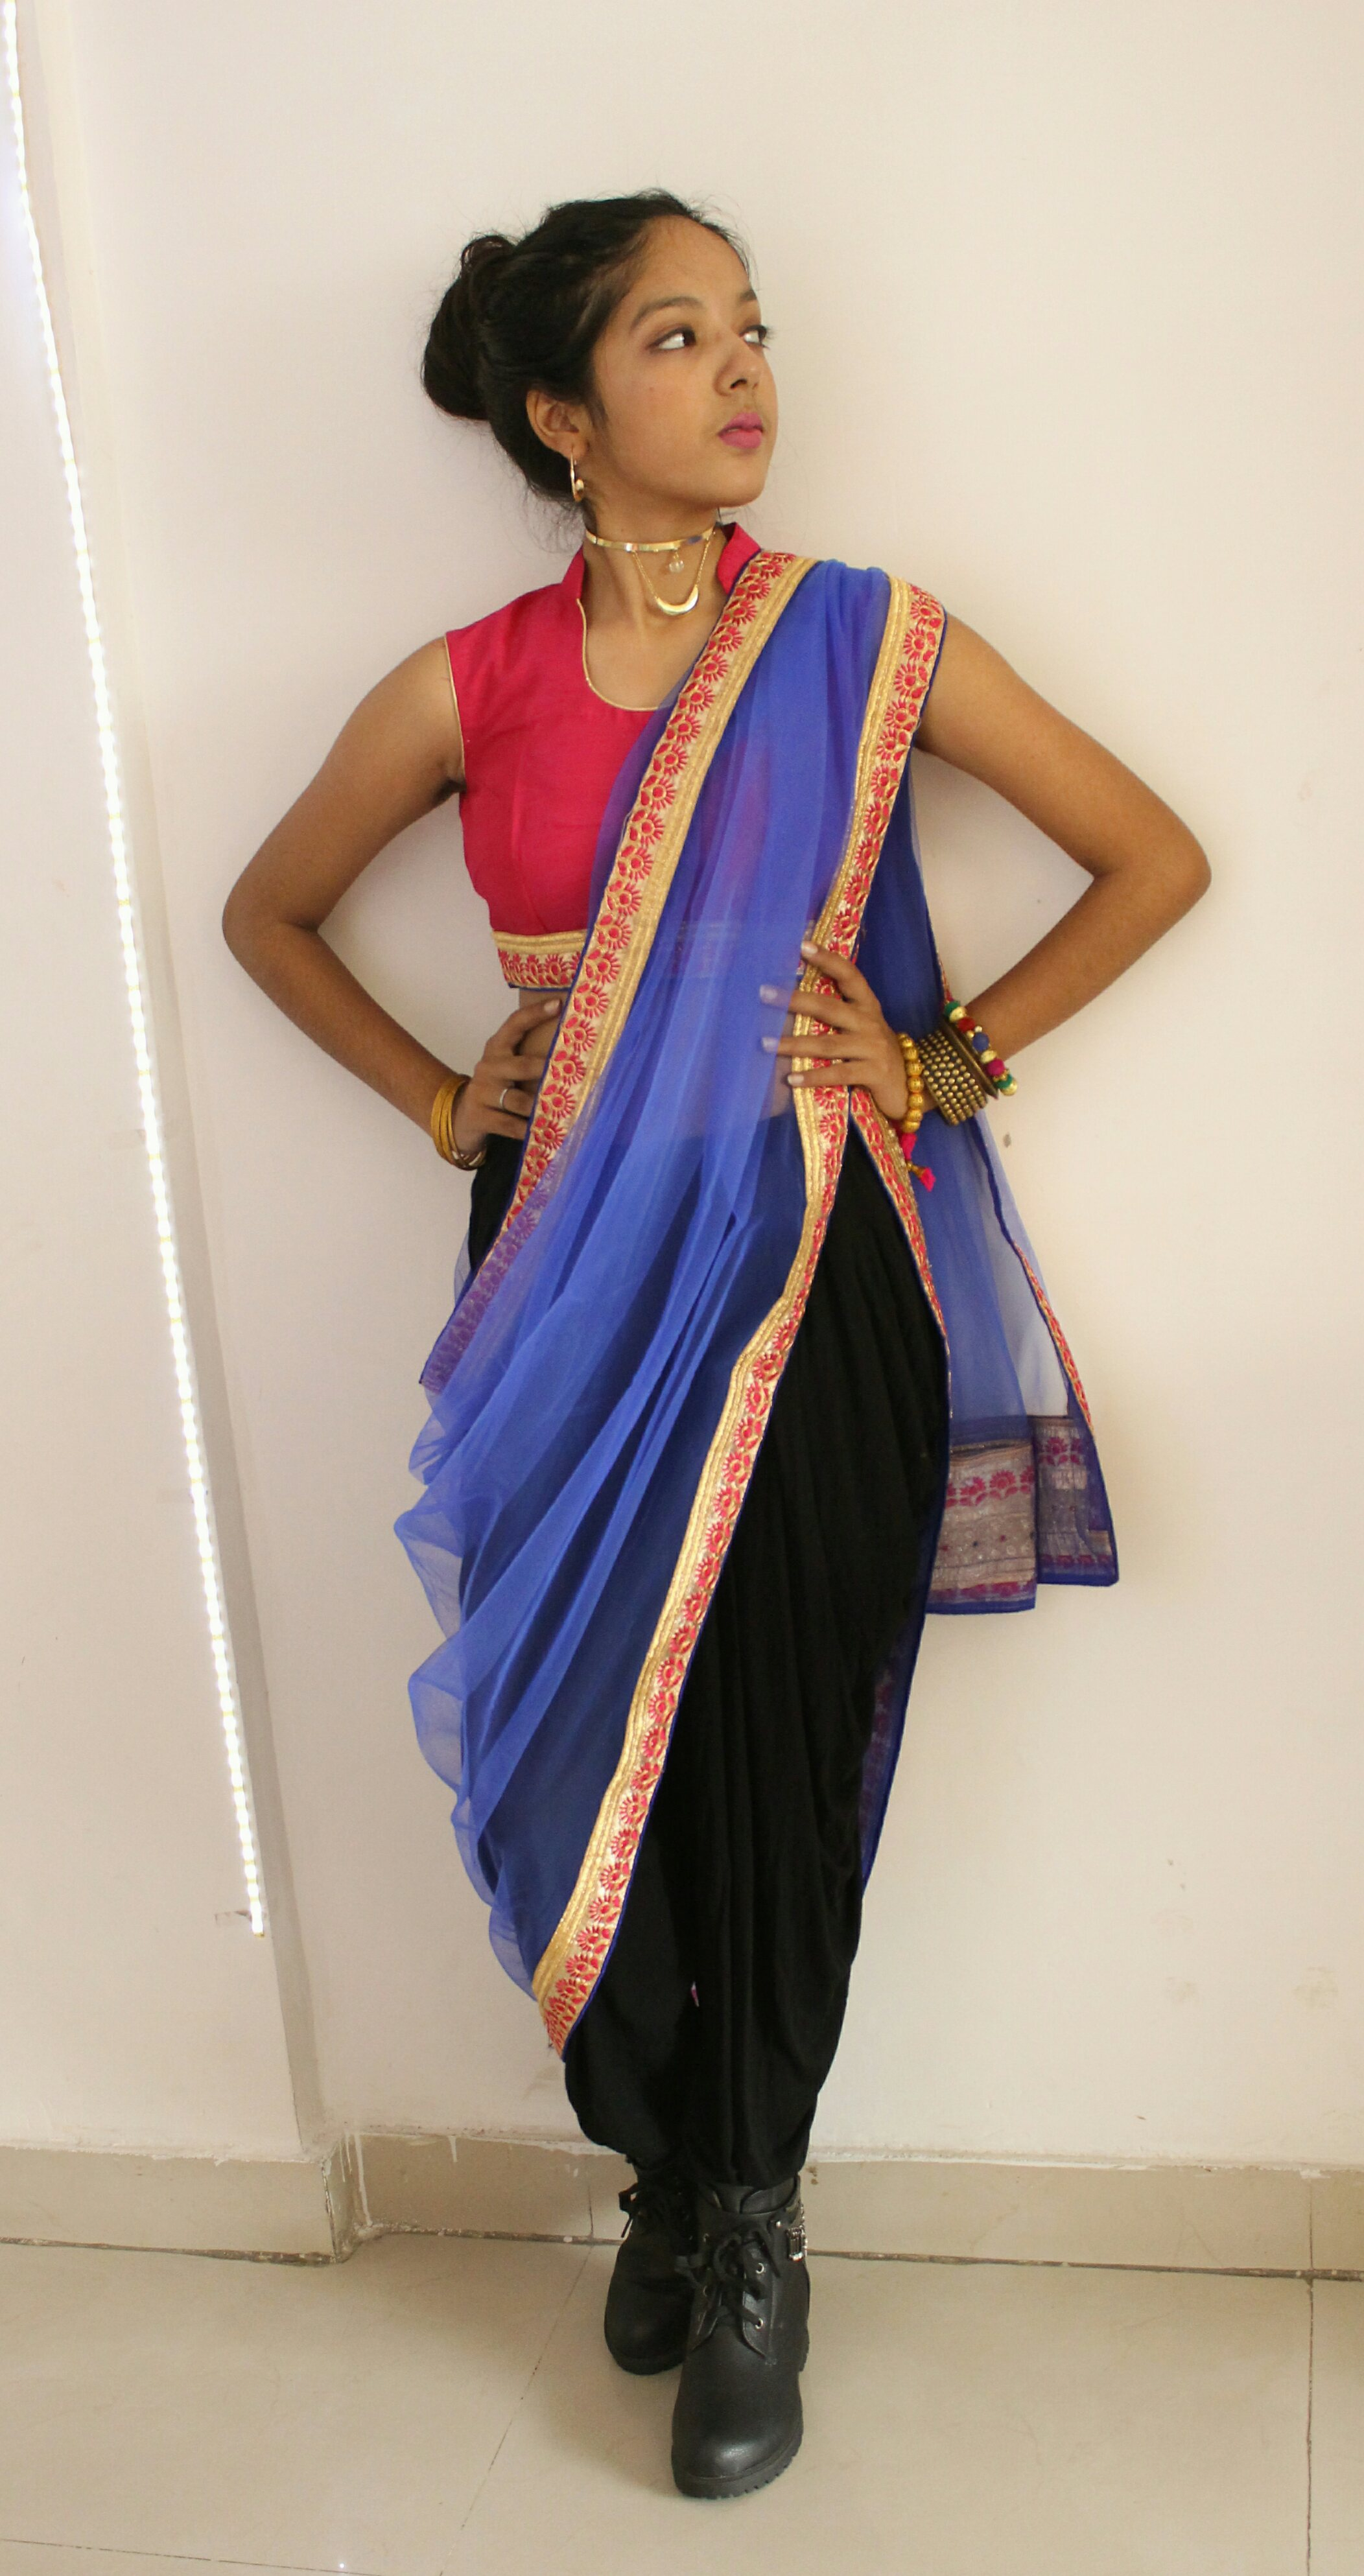 STEP UP YOUR FASHION GAME THIS DIWALI!(LOOK 1) image